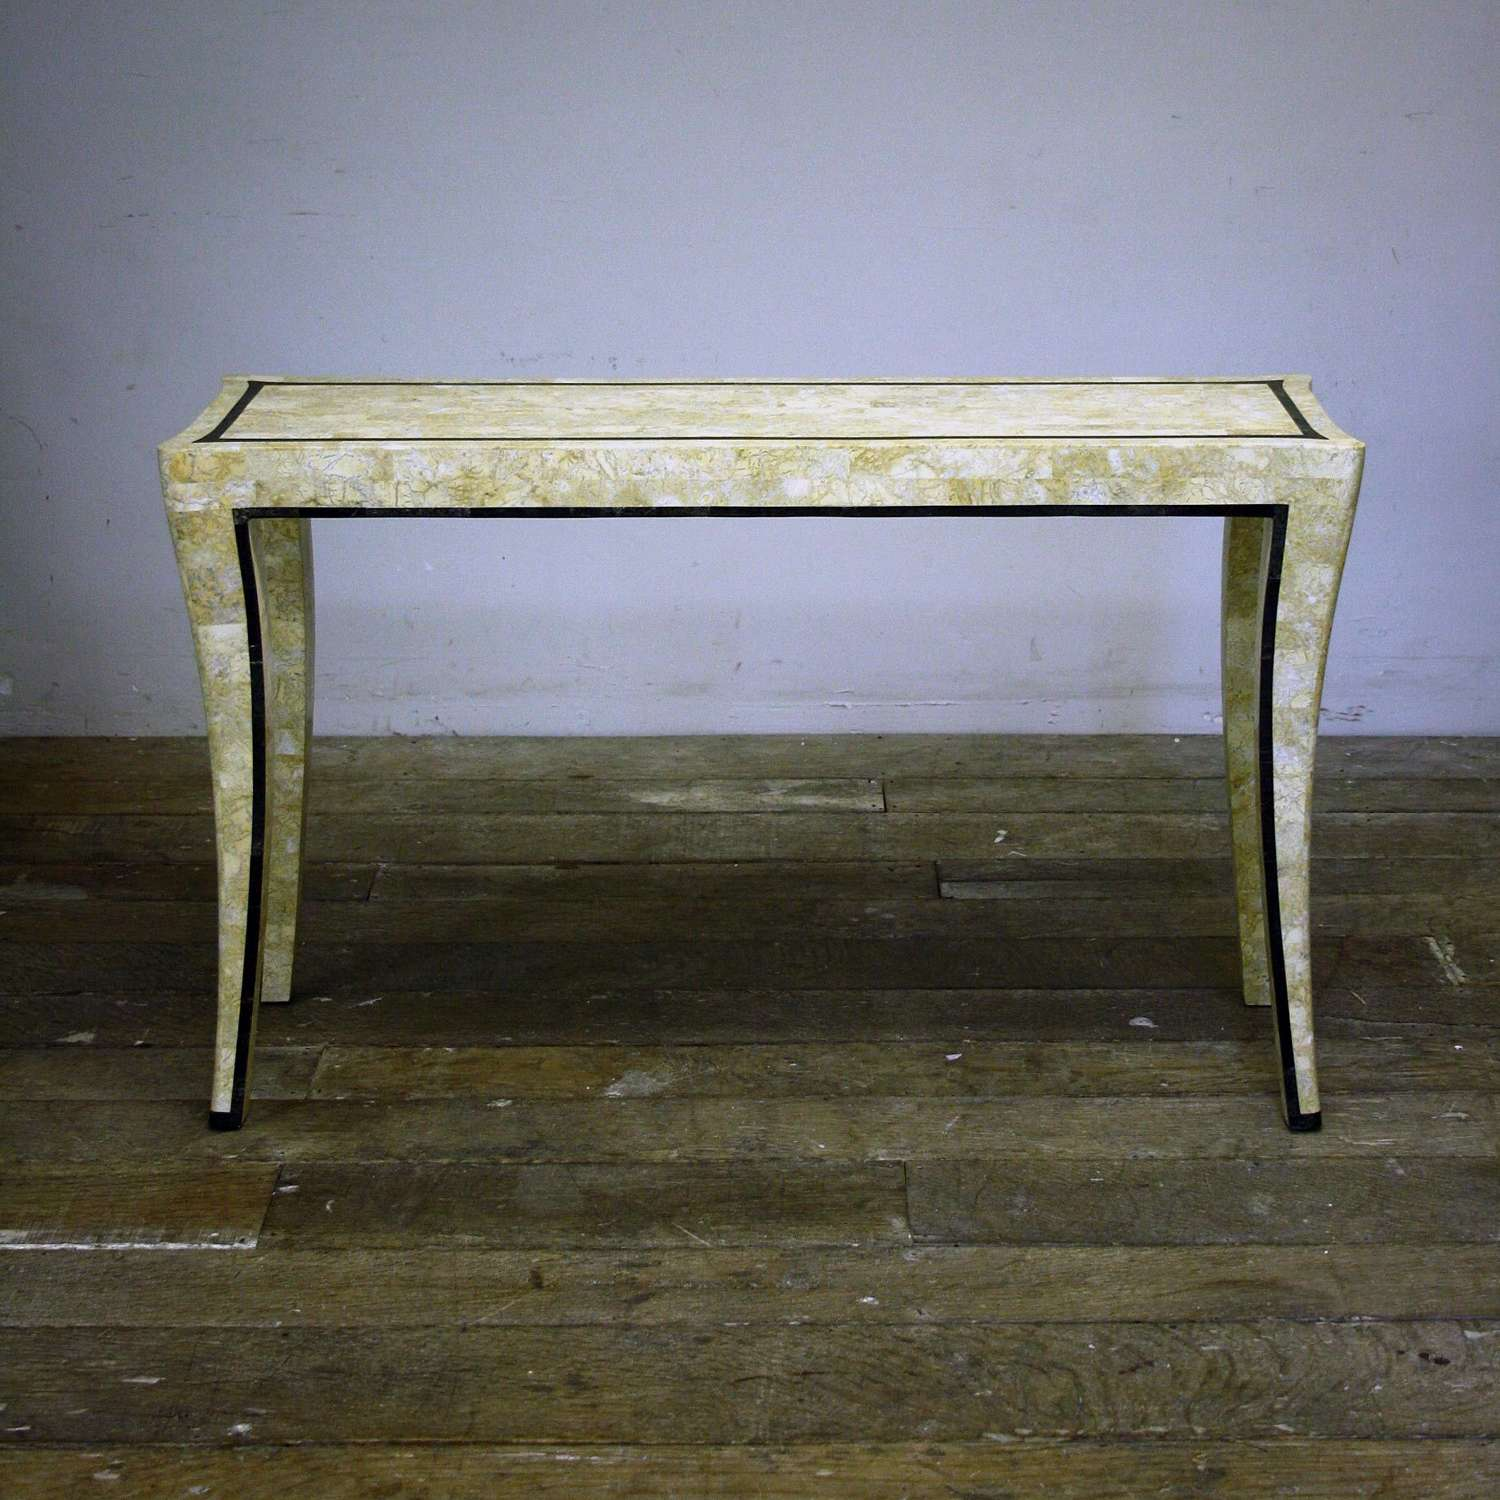 20th Century MAITLAND AND SMITH TRAVERTINE VANEER CONSOLE TABLE